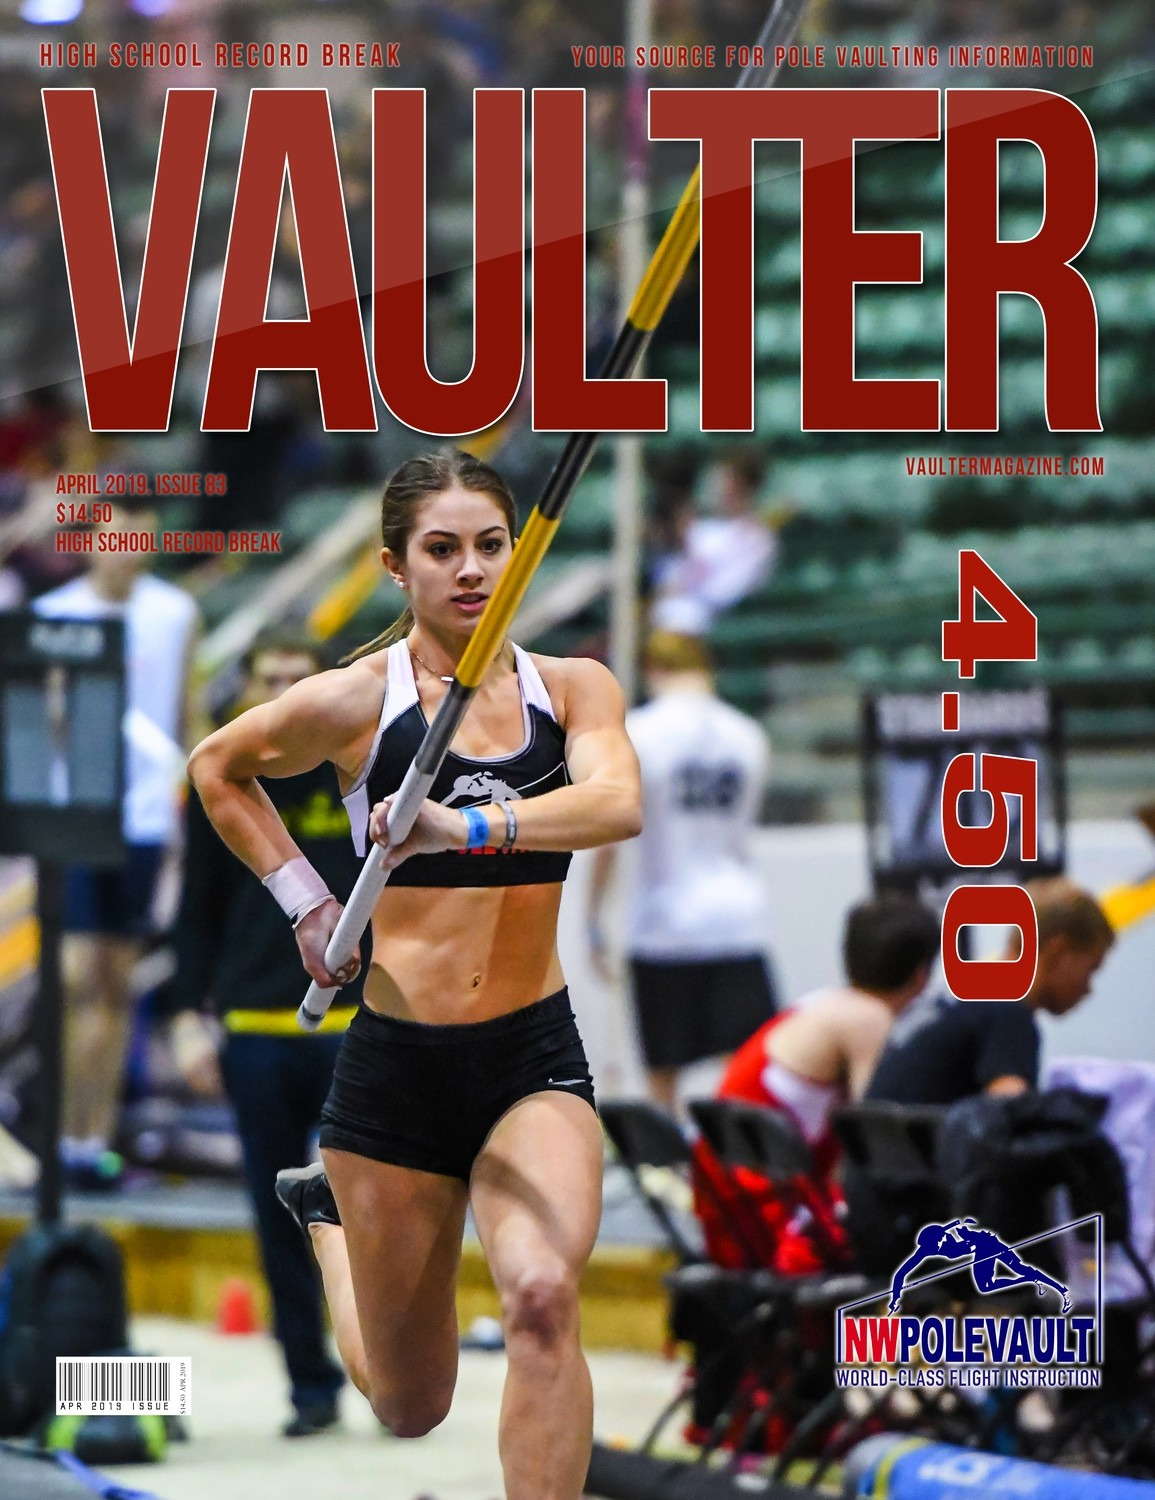 April 2019 High School Record Break Chloe Cunliffe Issue of Vaulter Magazine Cover  - Poster